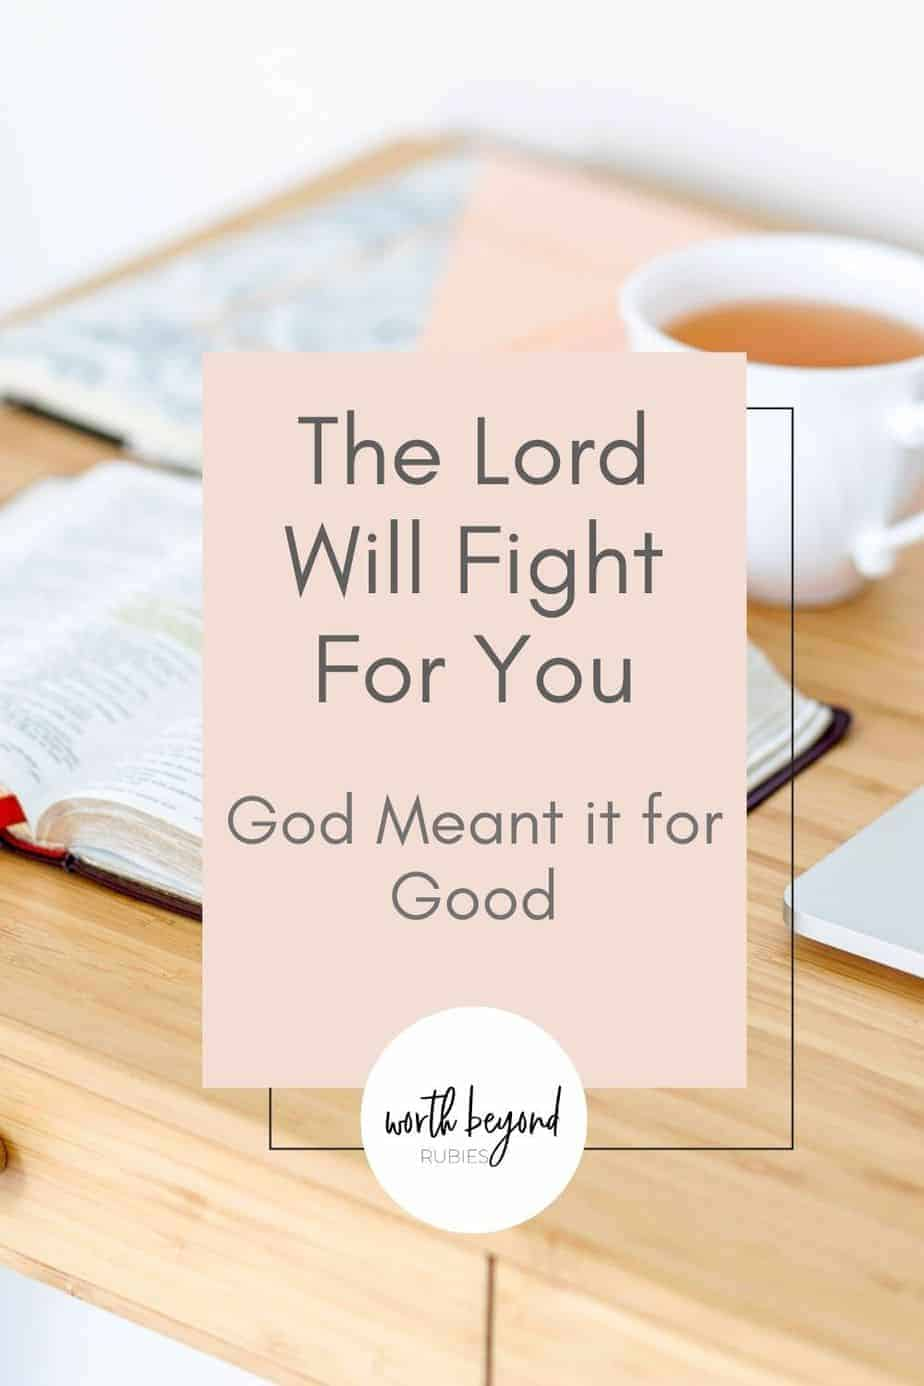 A table with an open Bible and a cup of tea with text that says The Lord Will Fight for You - God Meant it for Good